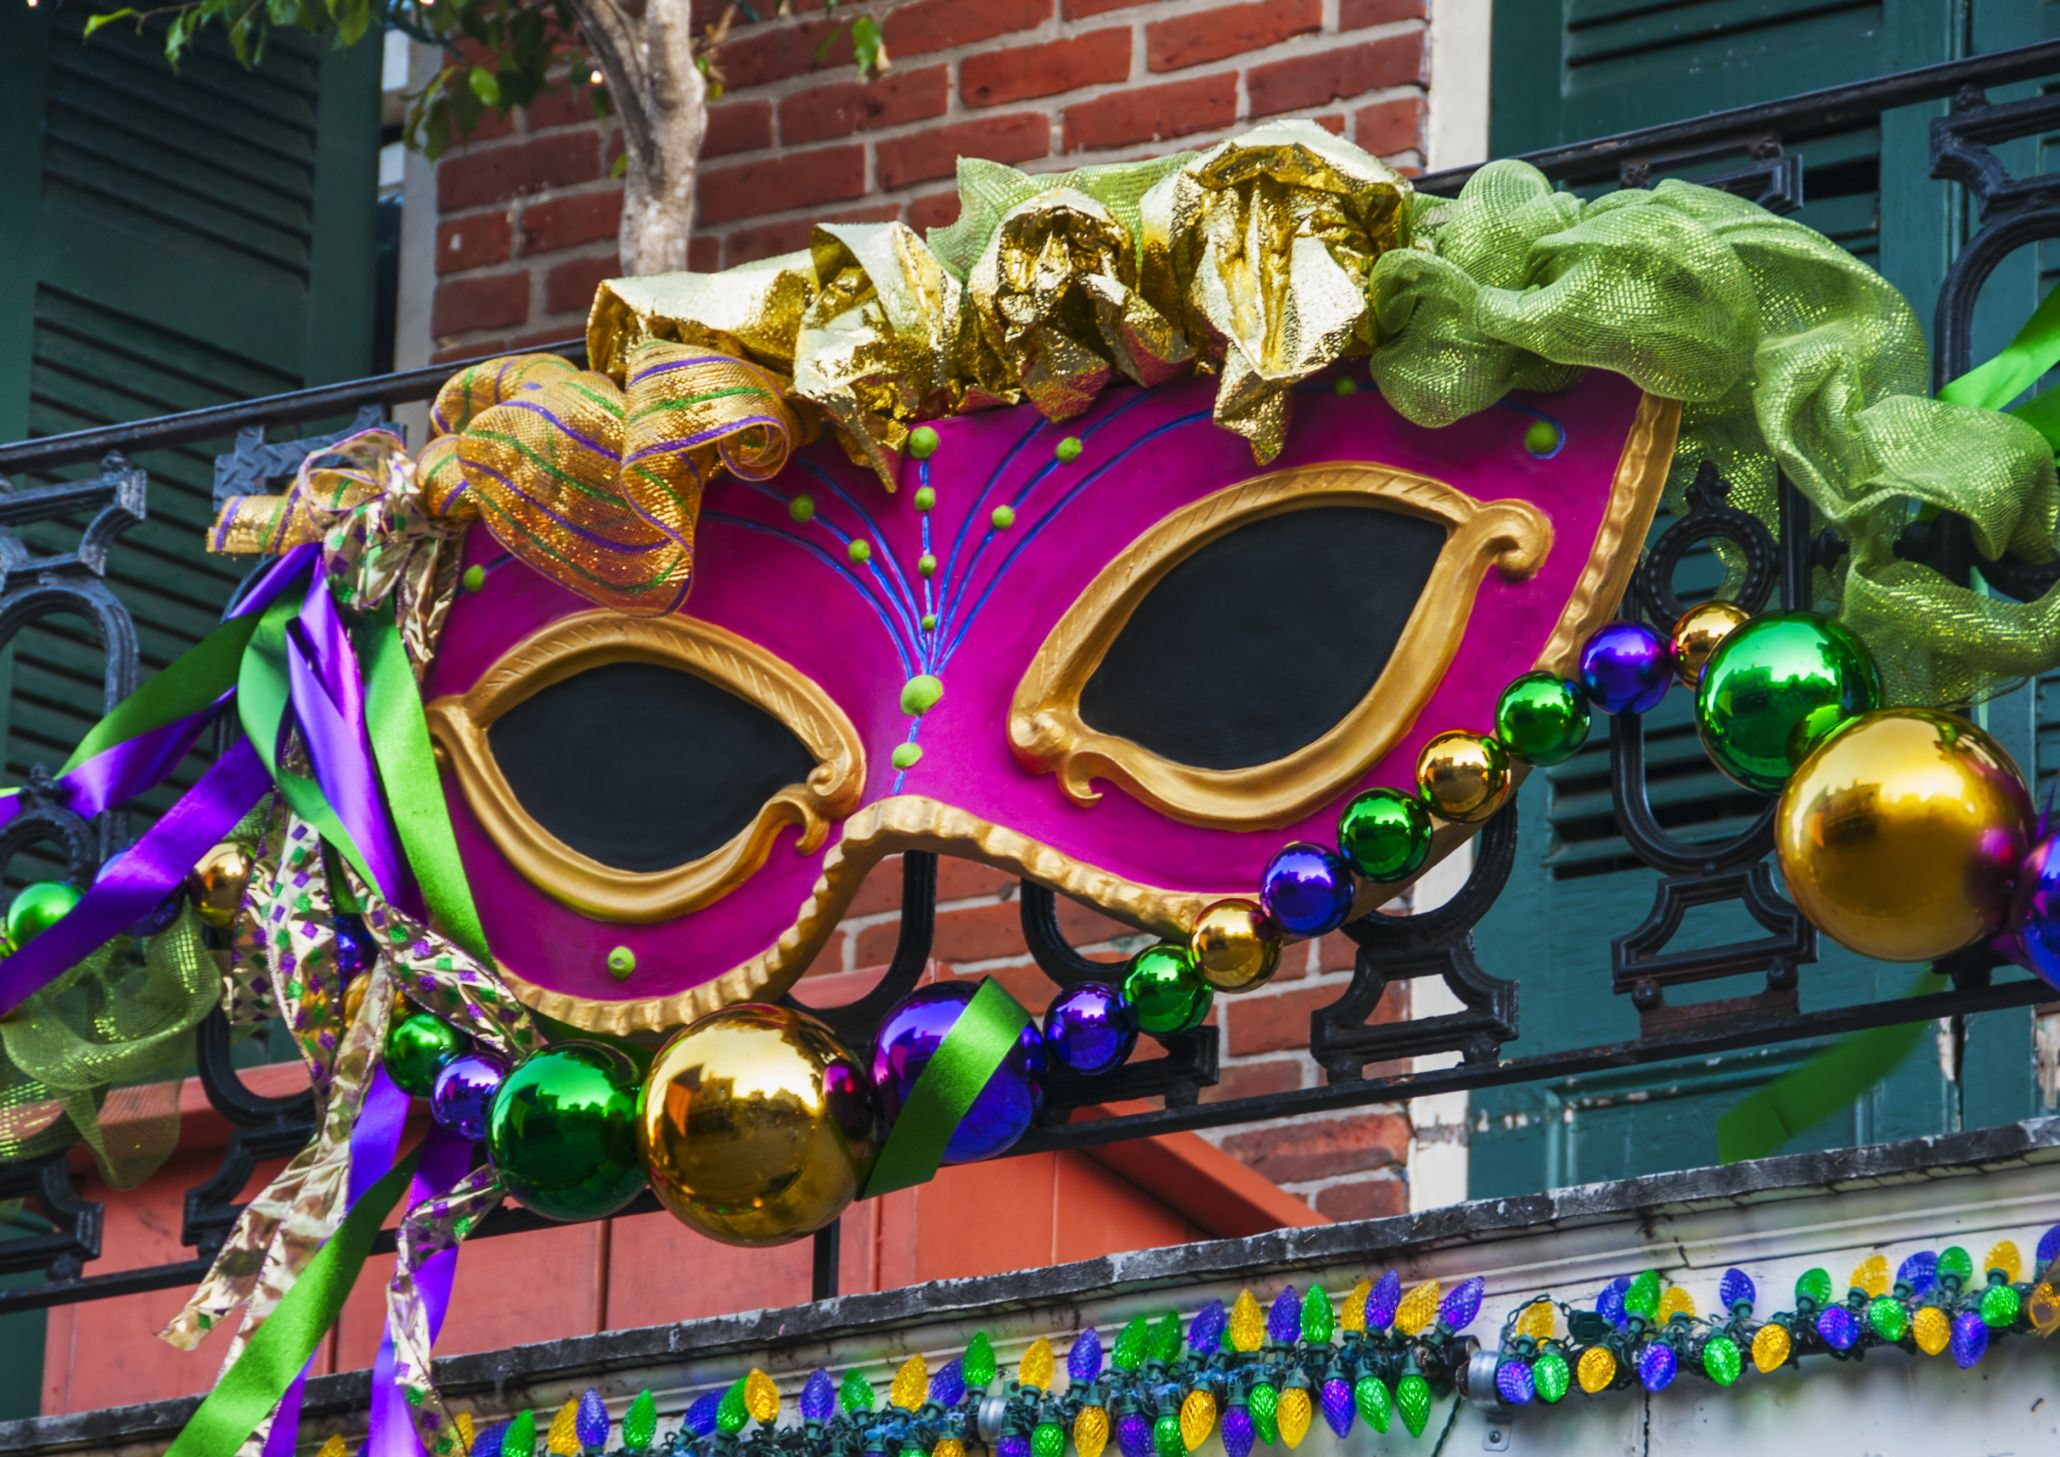 photo regarding Mardi Gras Trivia Quiz Printable known as Mardi Gras Trivia Enjoyable Info Over Mardi Gras 2019